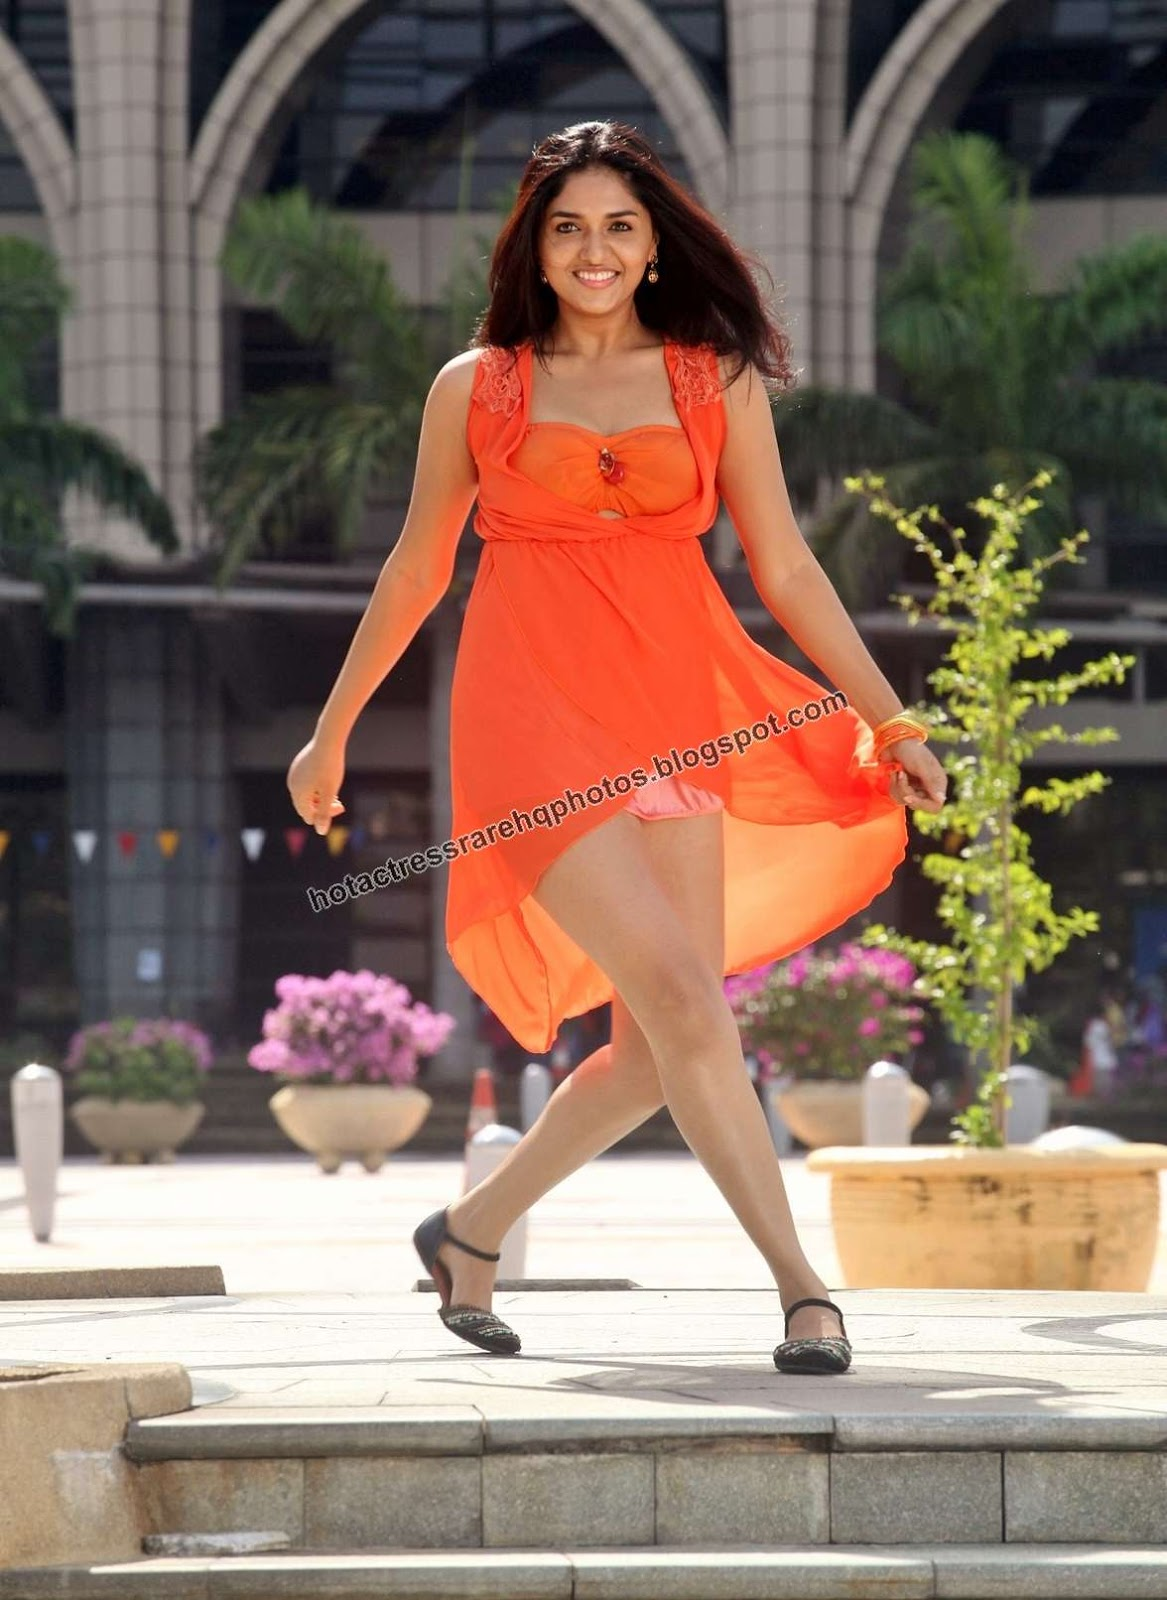 Tamil Actress Sunaina Hottest Thunder Thighs And Cleavage Show In Orange Dress From Samar Movie South Indian Actress Sunaina Panty Show In Short